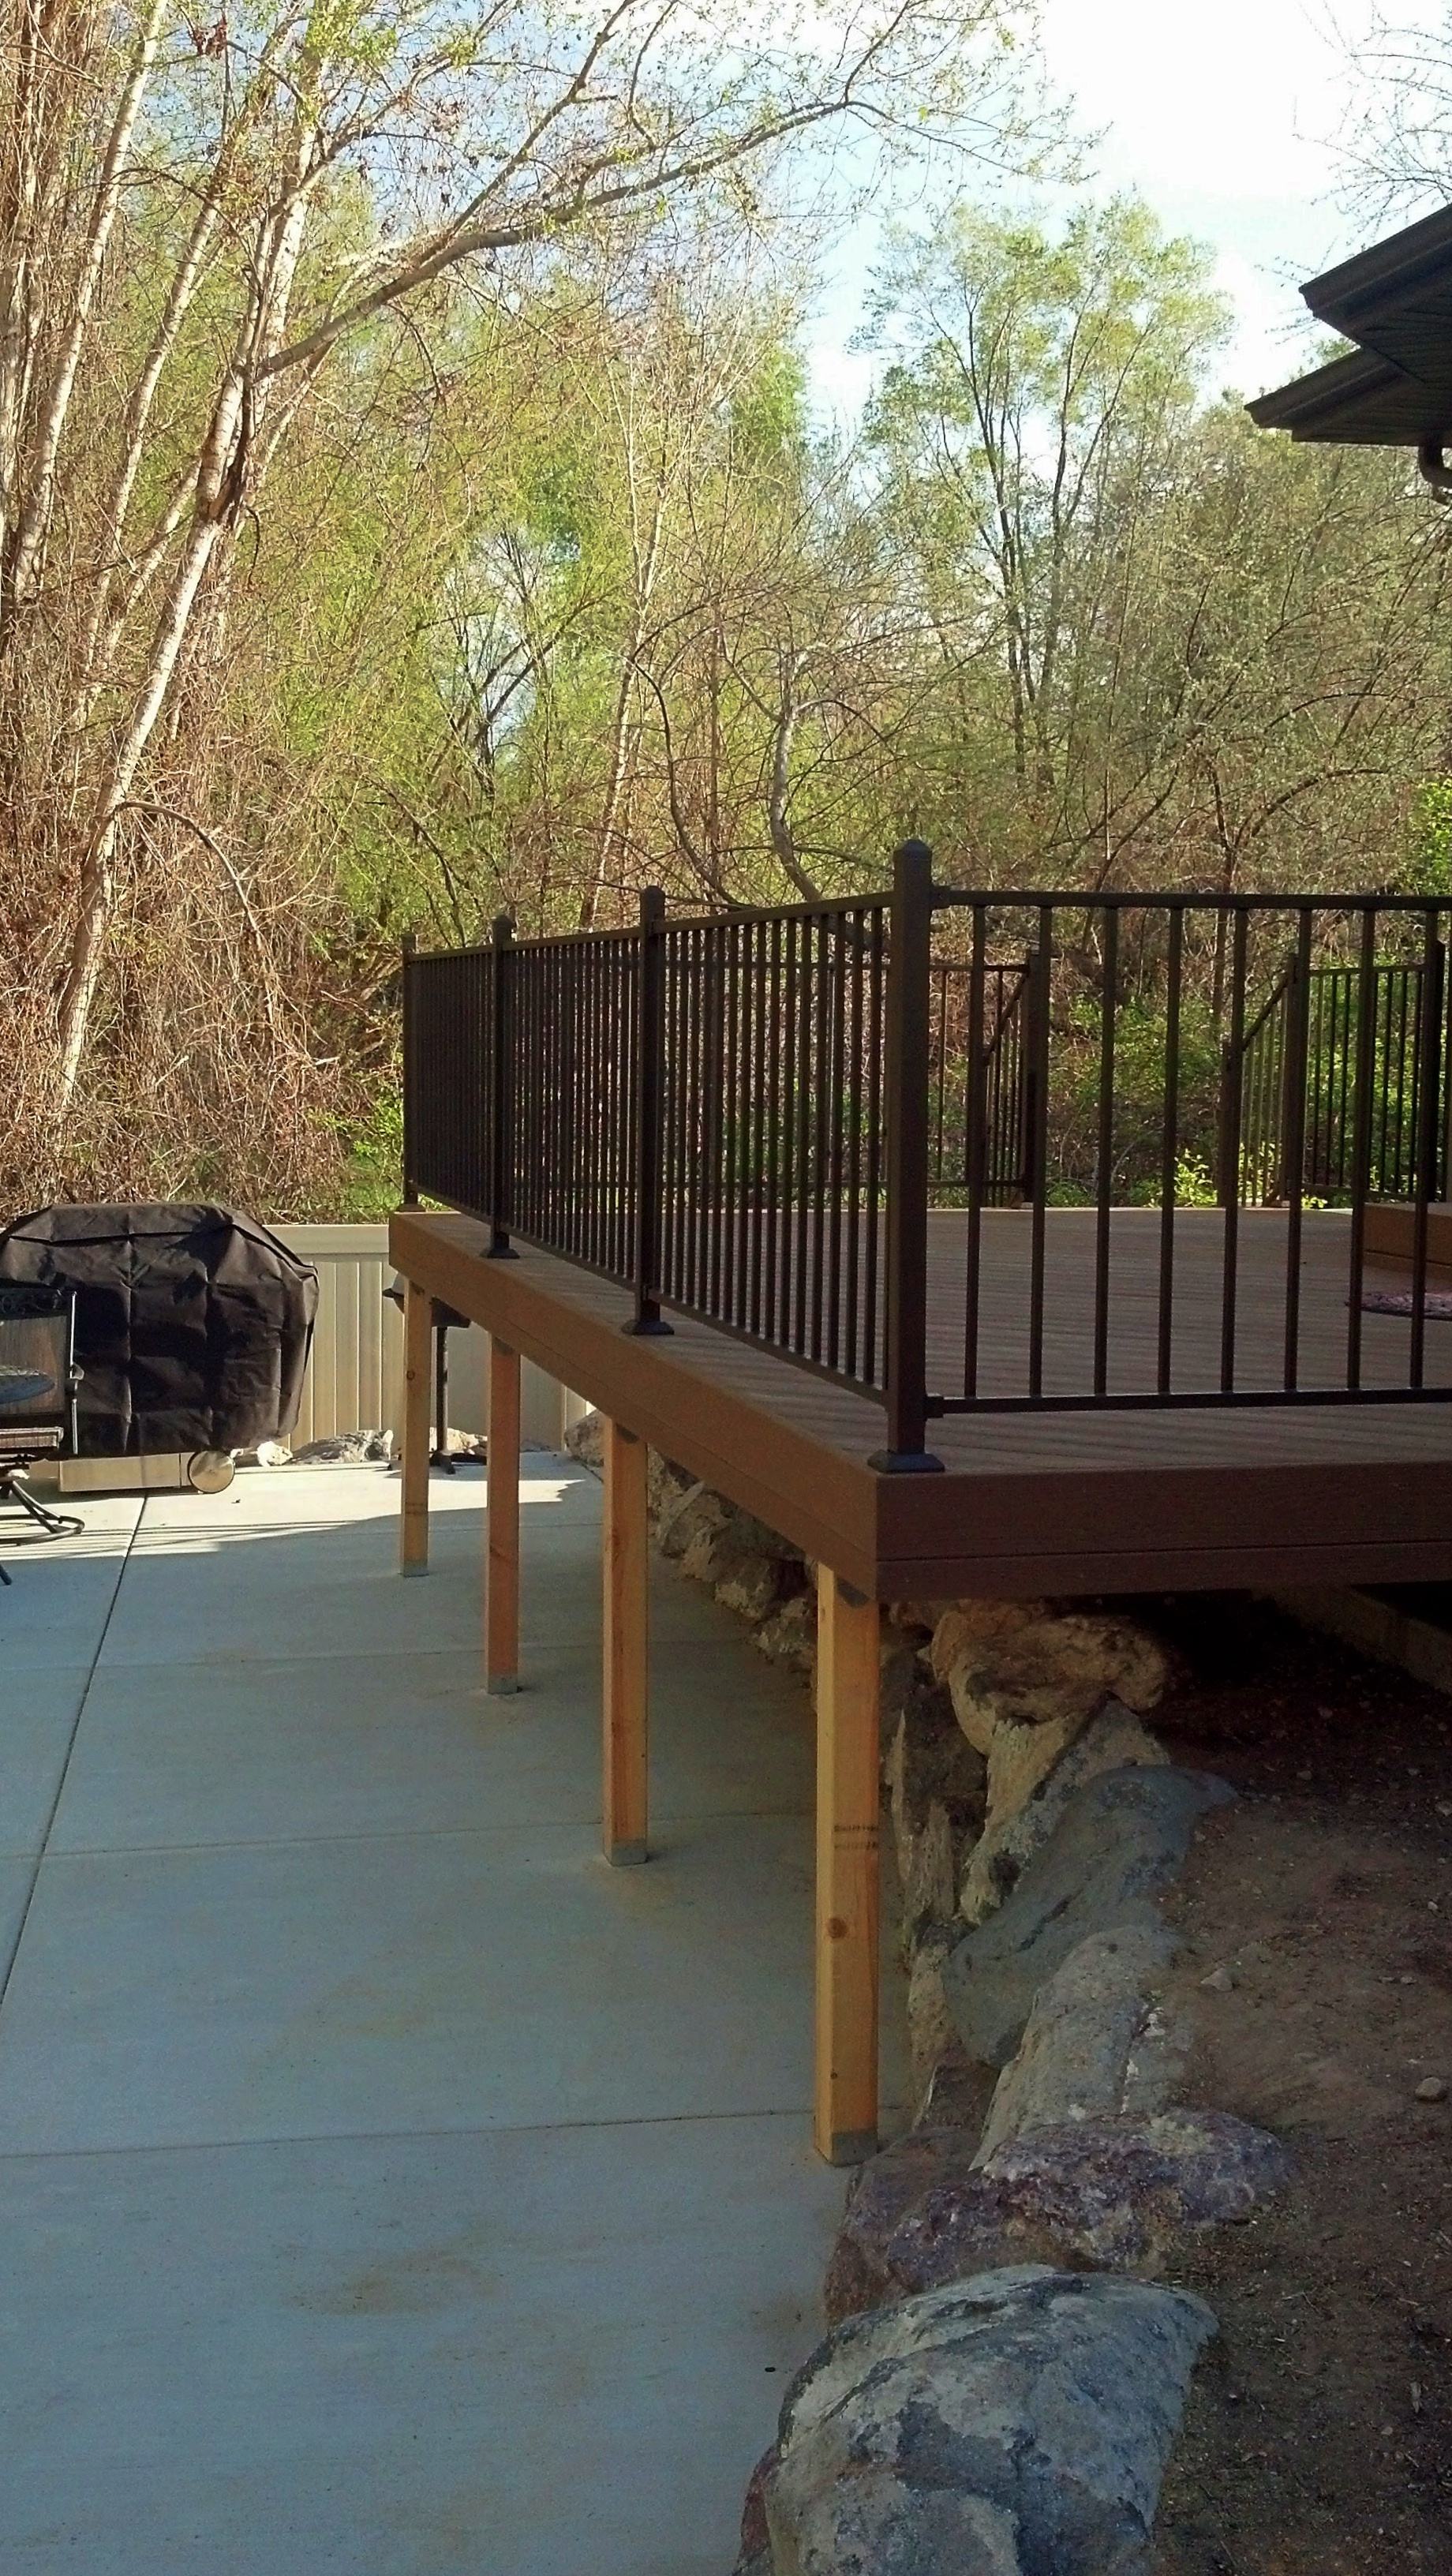 Cedar timbers and metal handrail